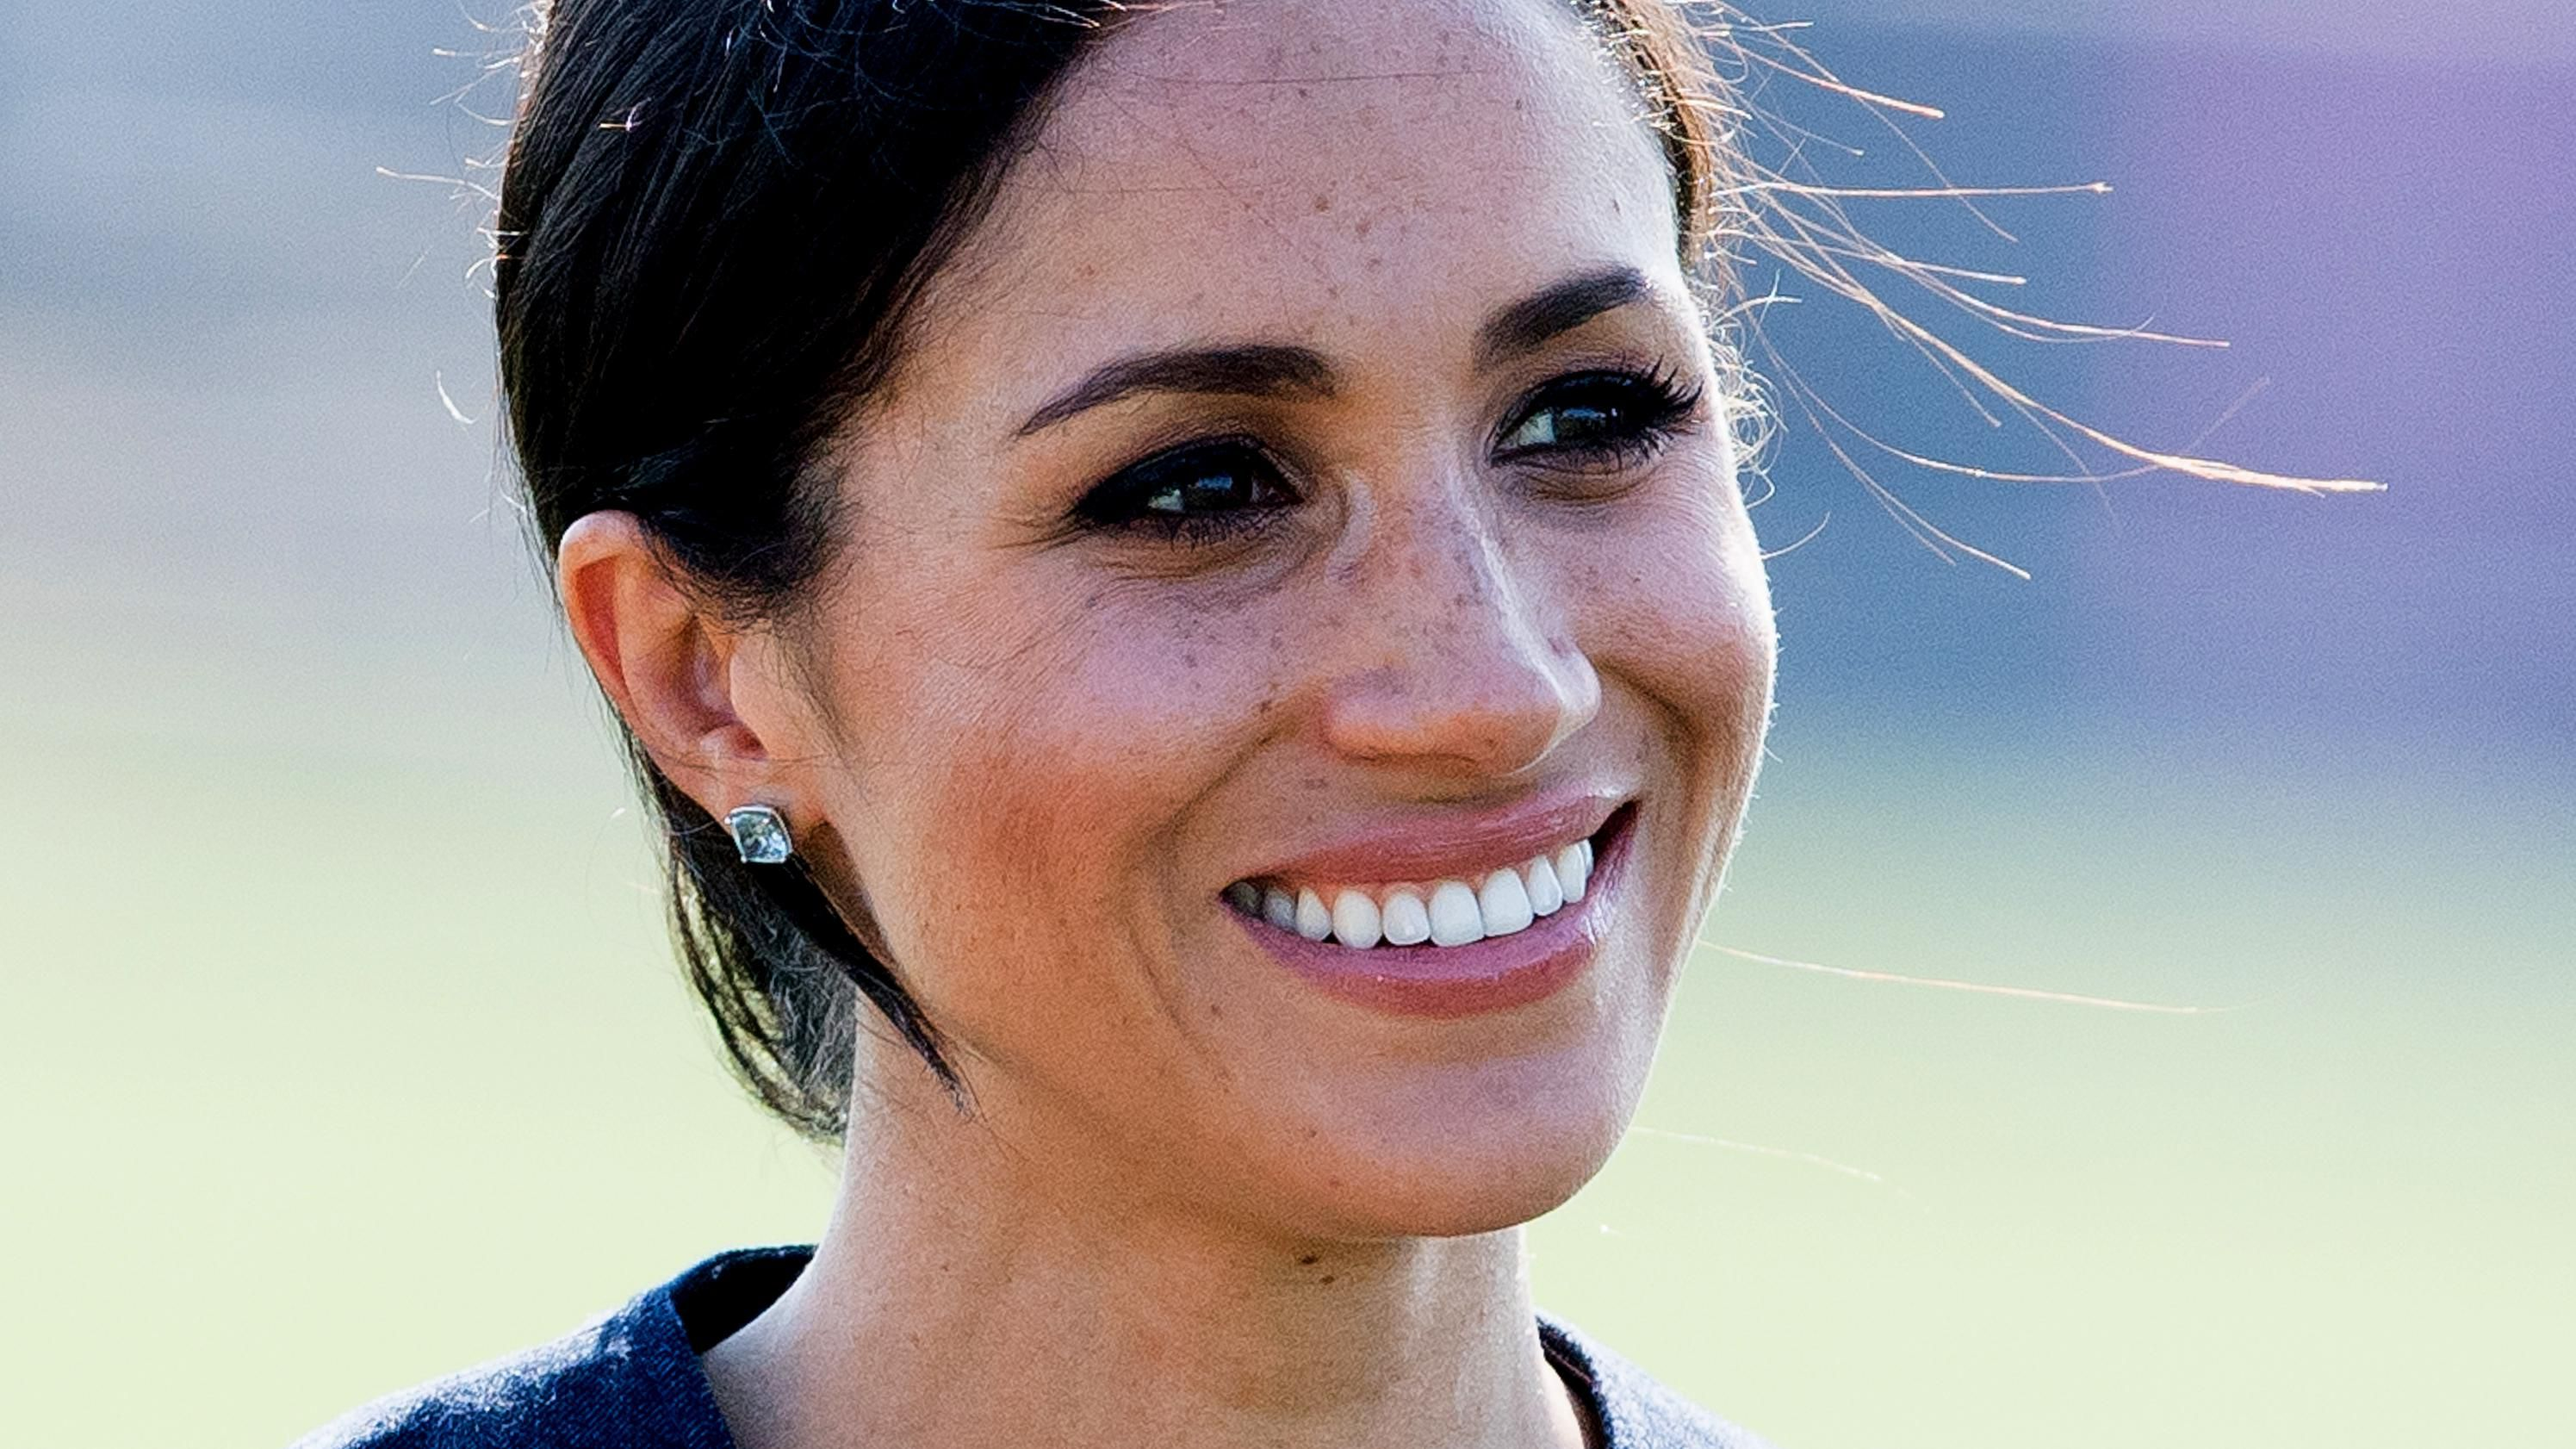 How To Get Meghan Markle S Bright White Teeth